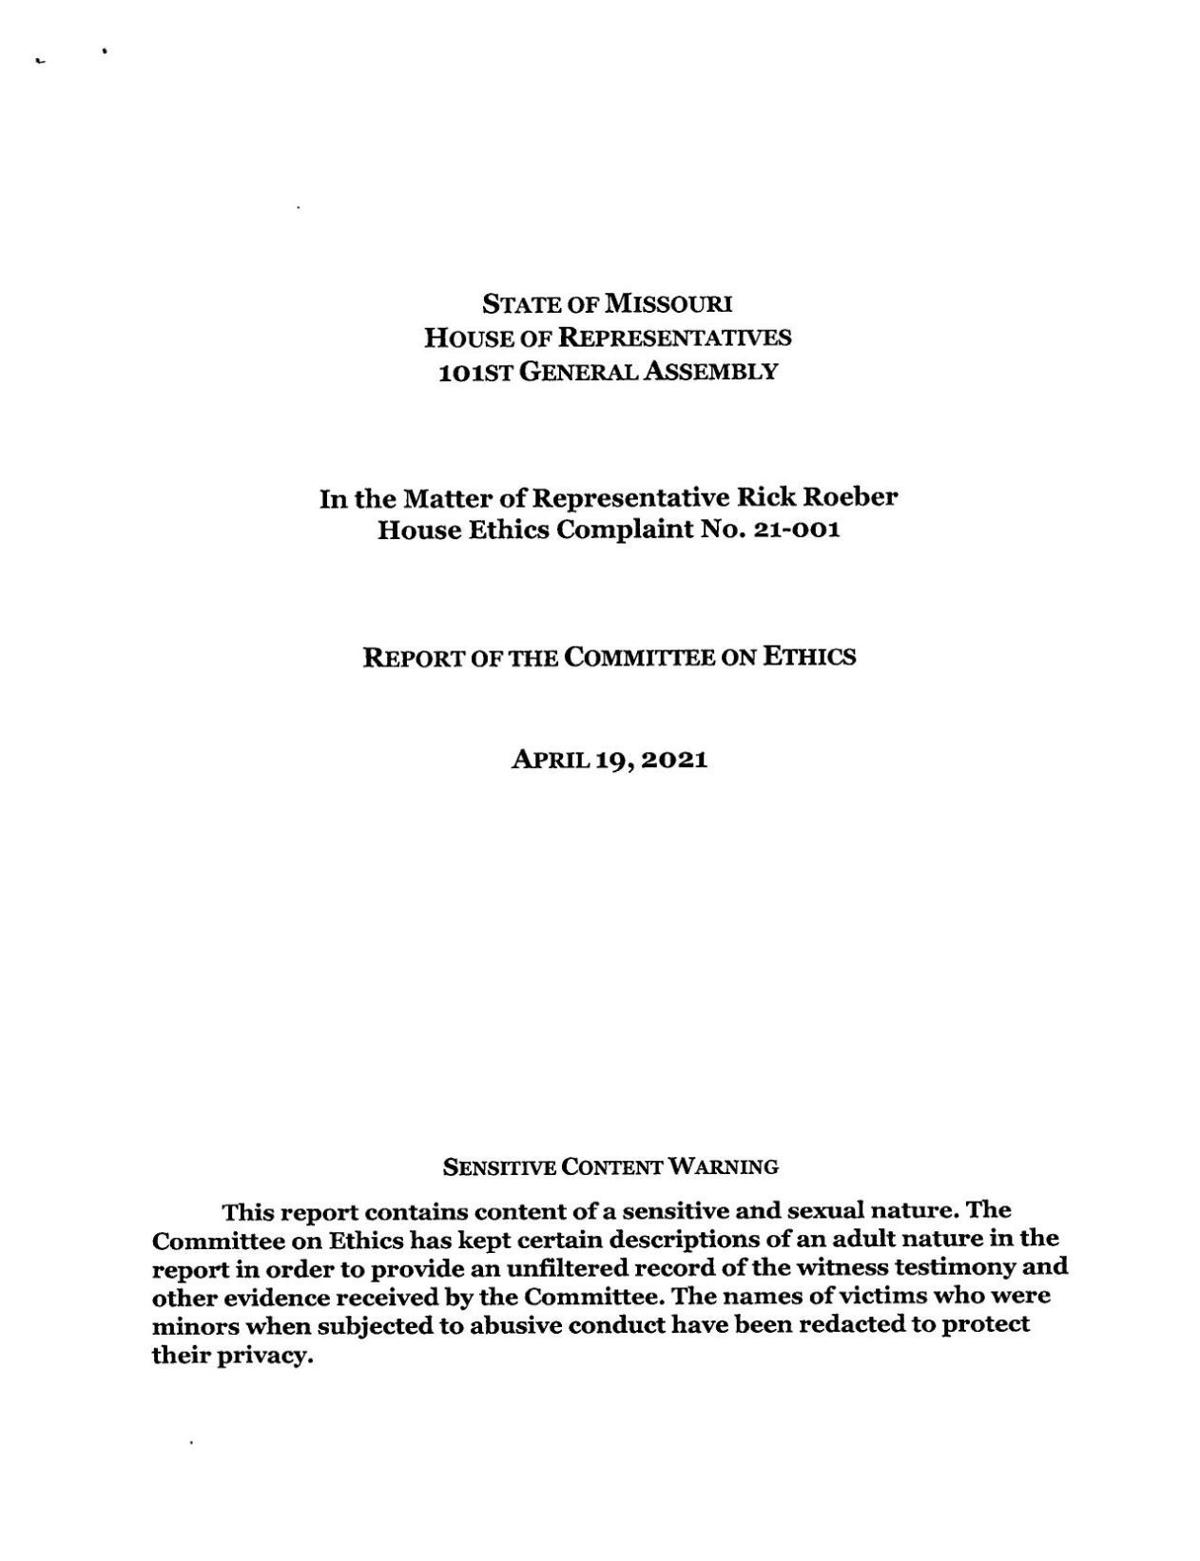 House Ethics Committee report on Rep. Rick Roeber